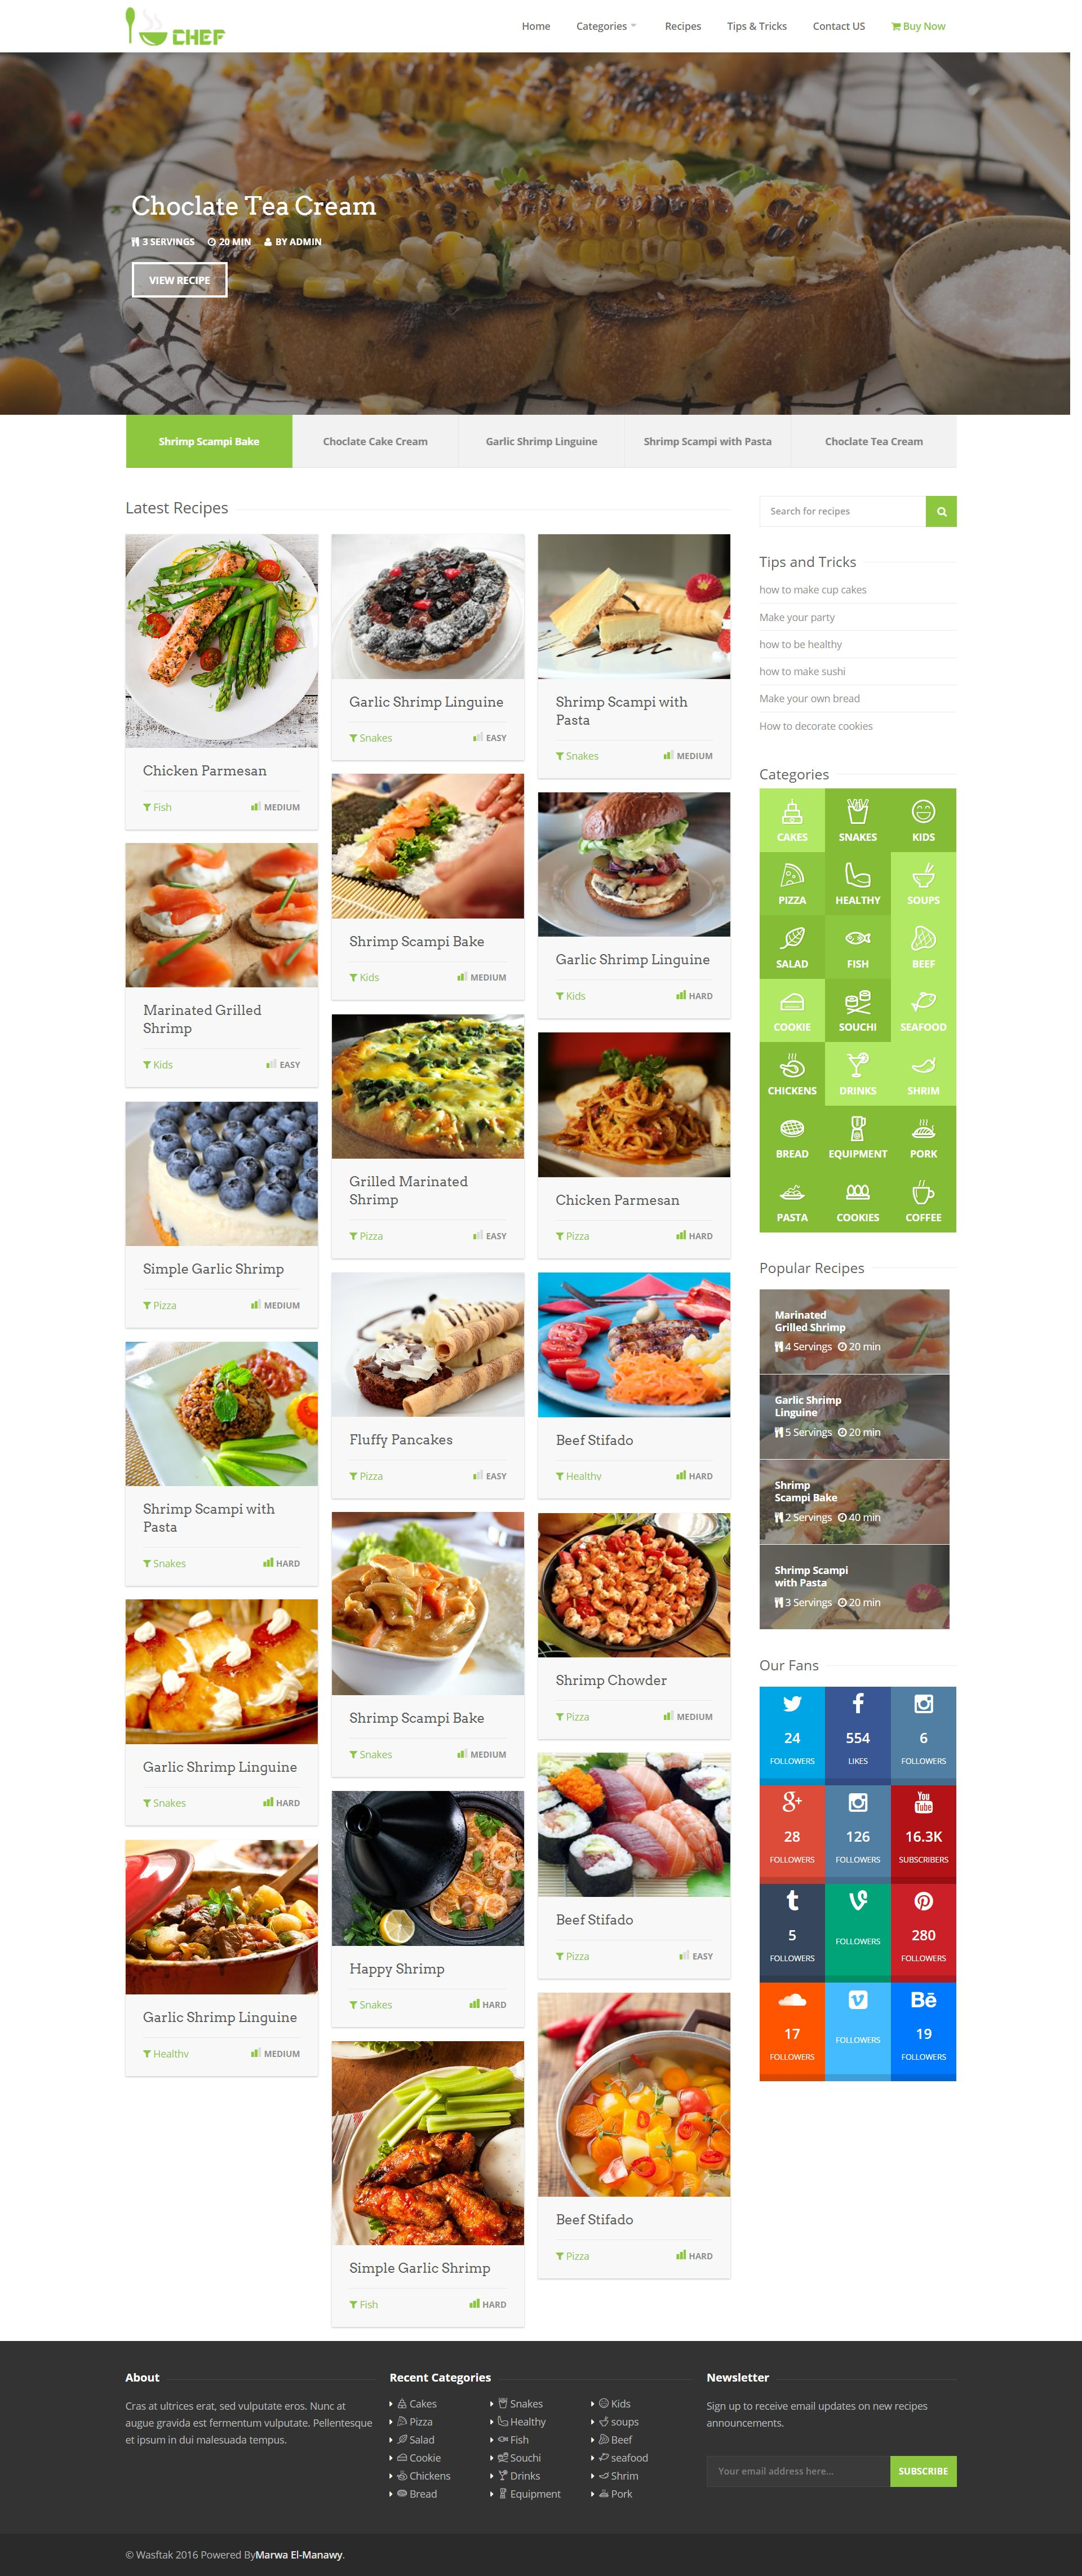 I-Chef - Recipes PHP Script Screenshot 1